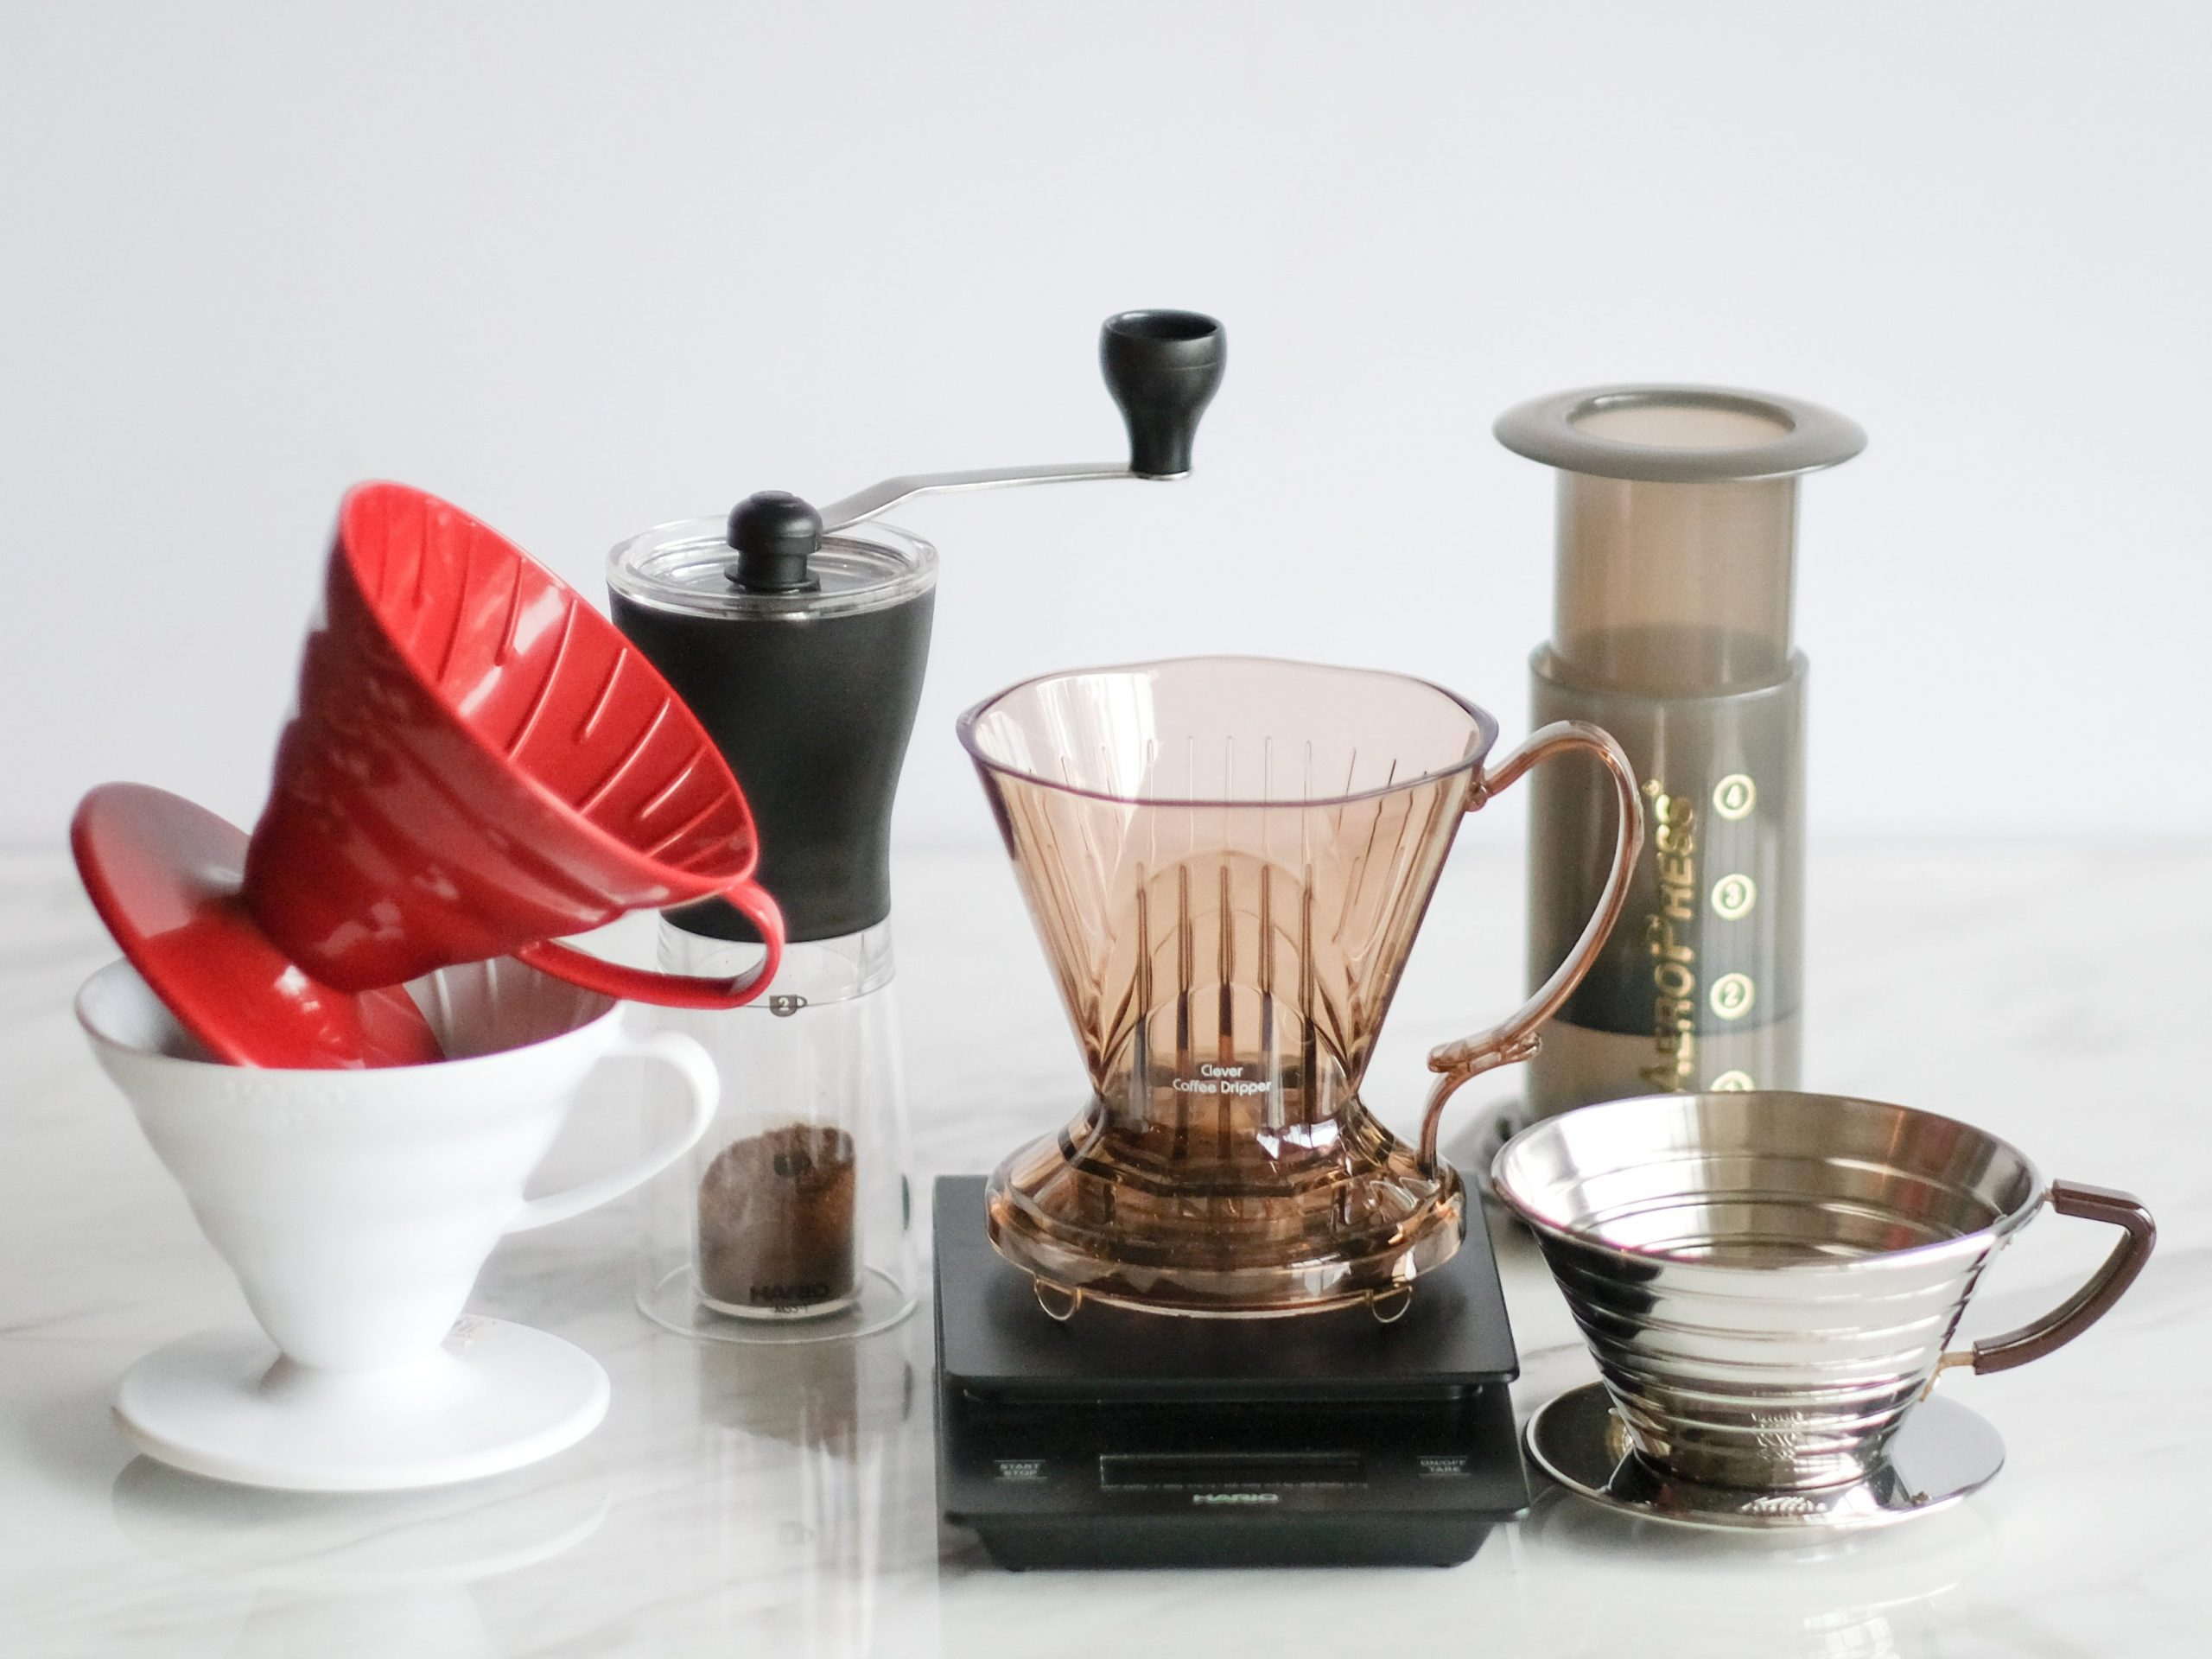 Hario V60 plastic red and white with Kalita Wave stainless dripper 185 also Aerobie Aeropress and Clever dripper sits on Hario digital scale